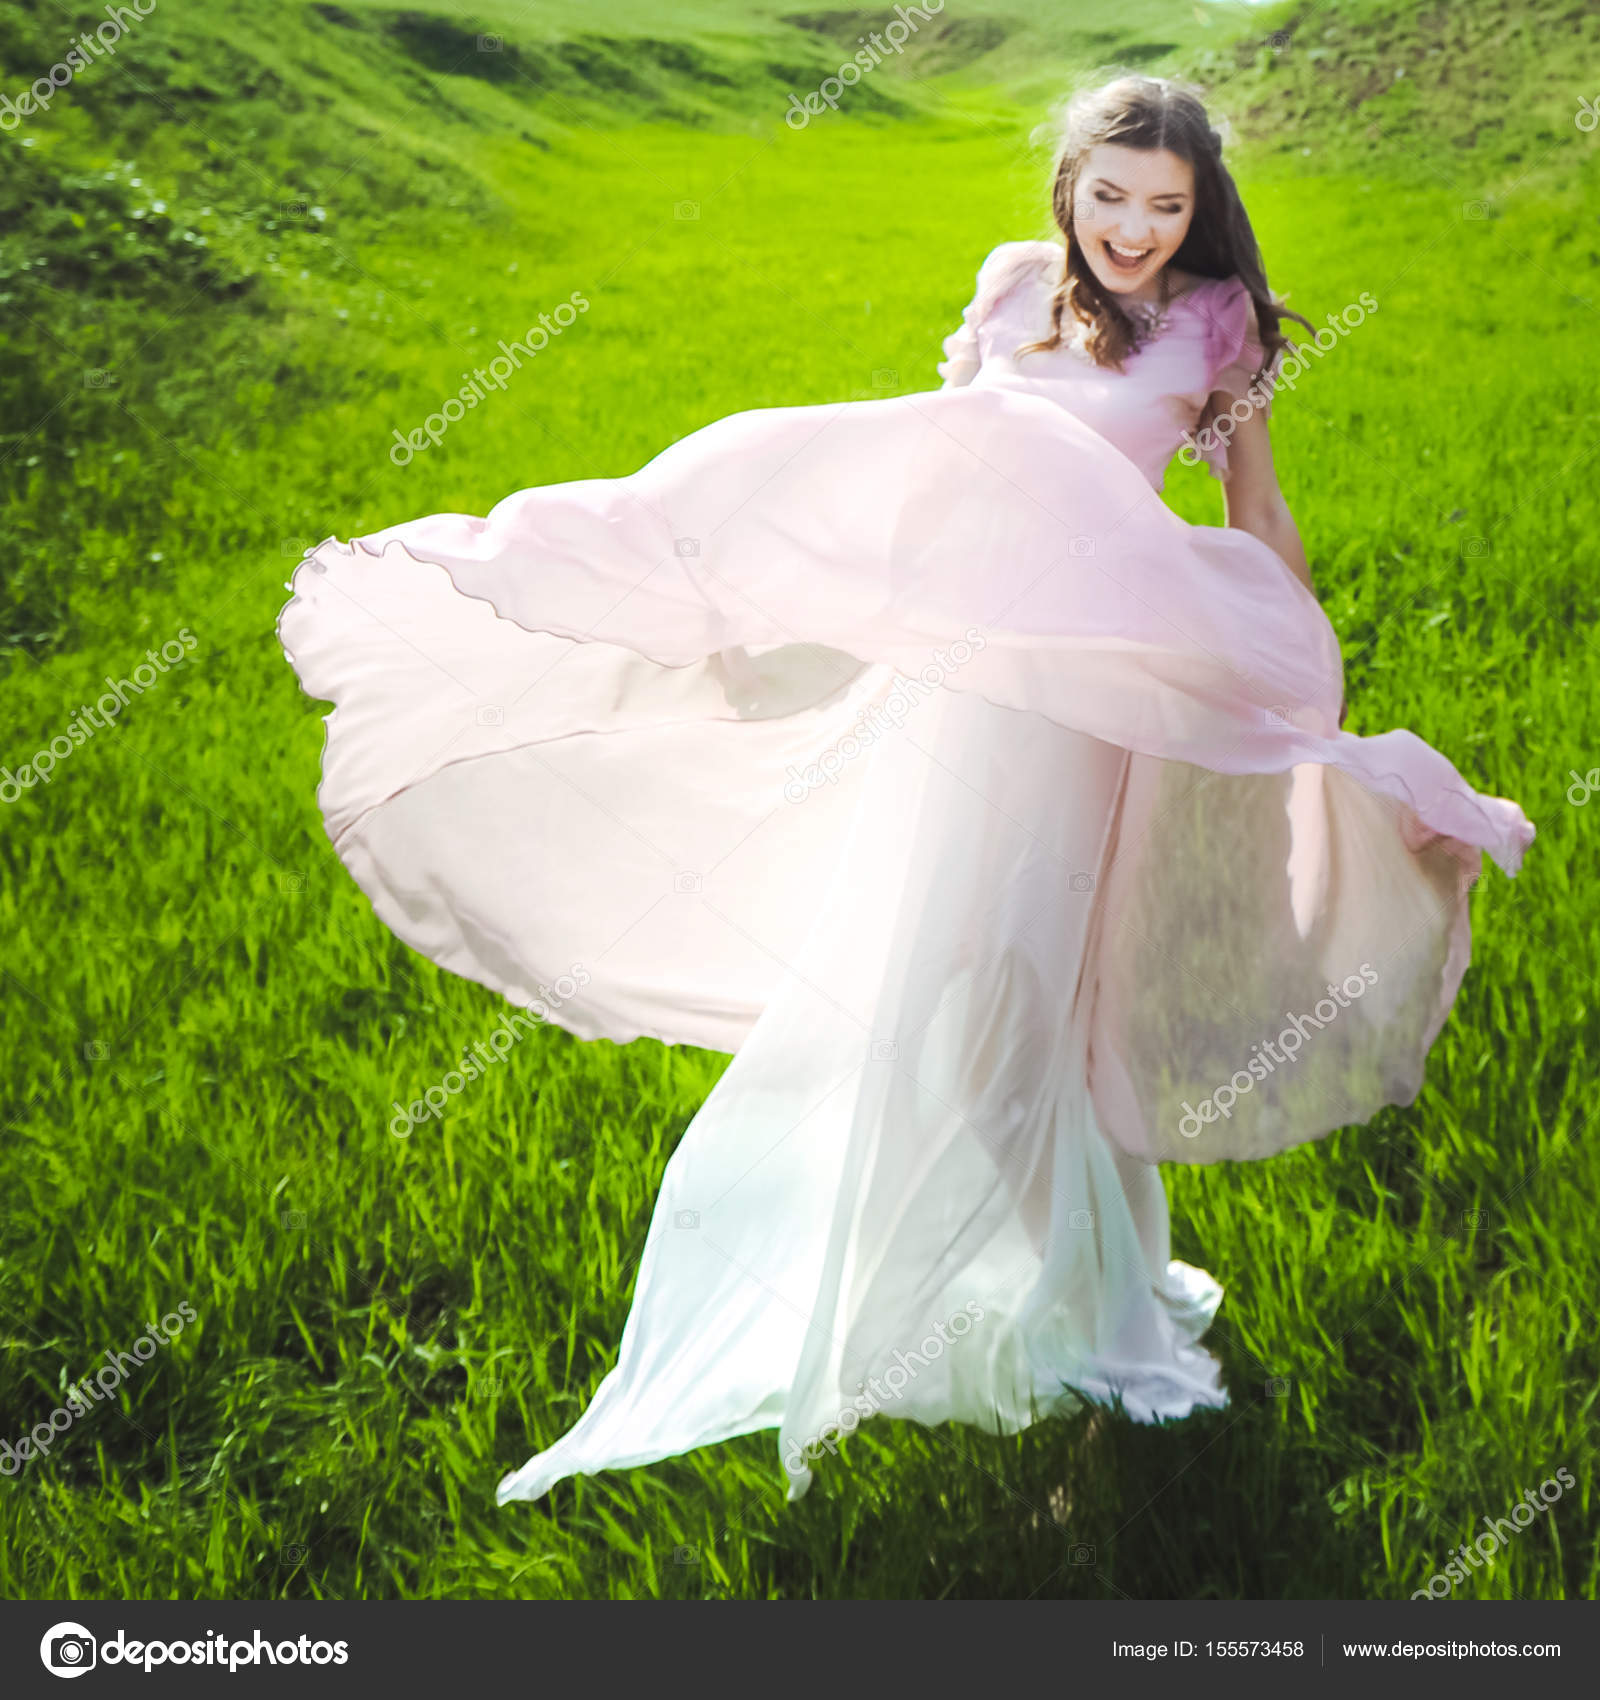 Girl Looking For A Wedding Dress A Pink Dress Flying With A Wreath